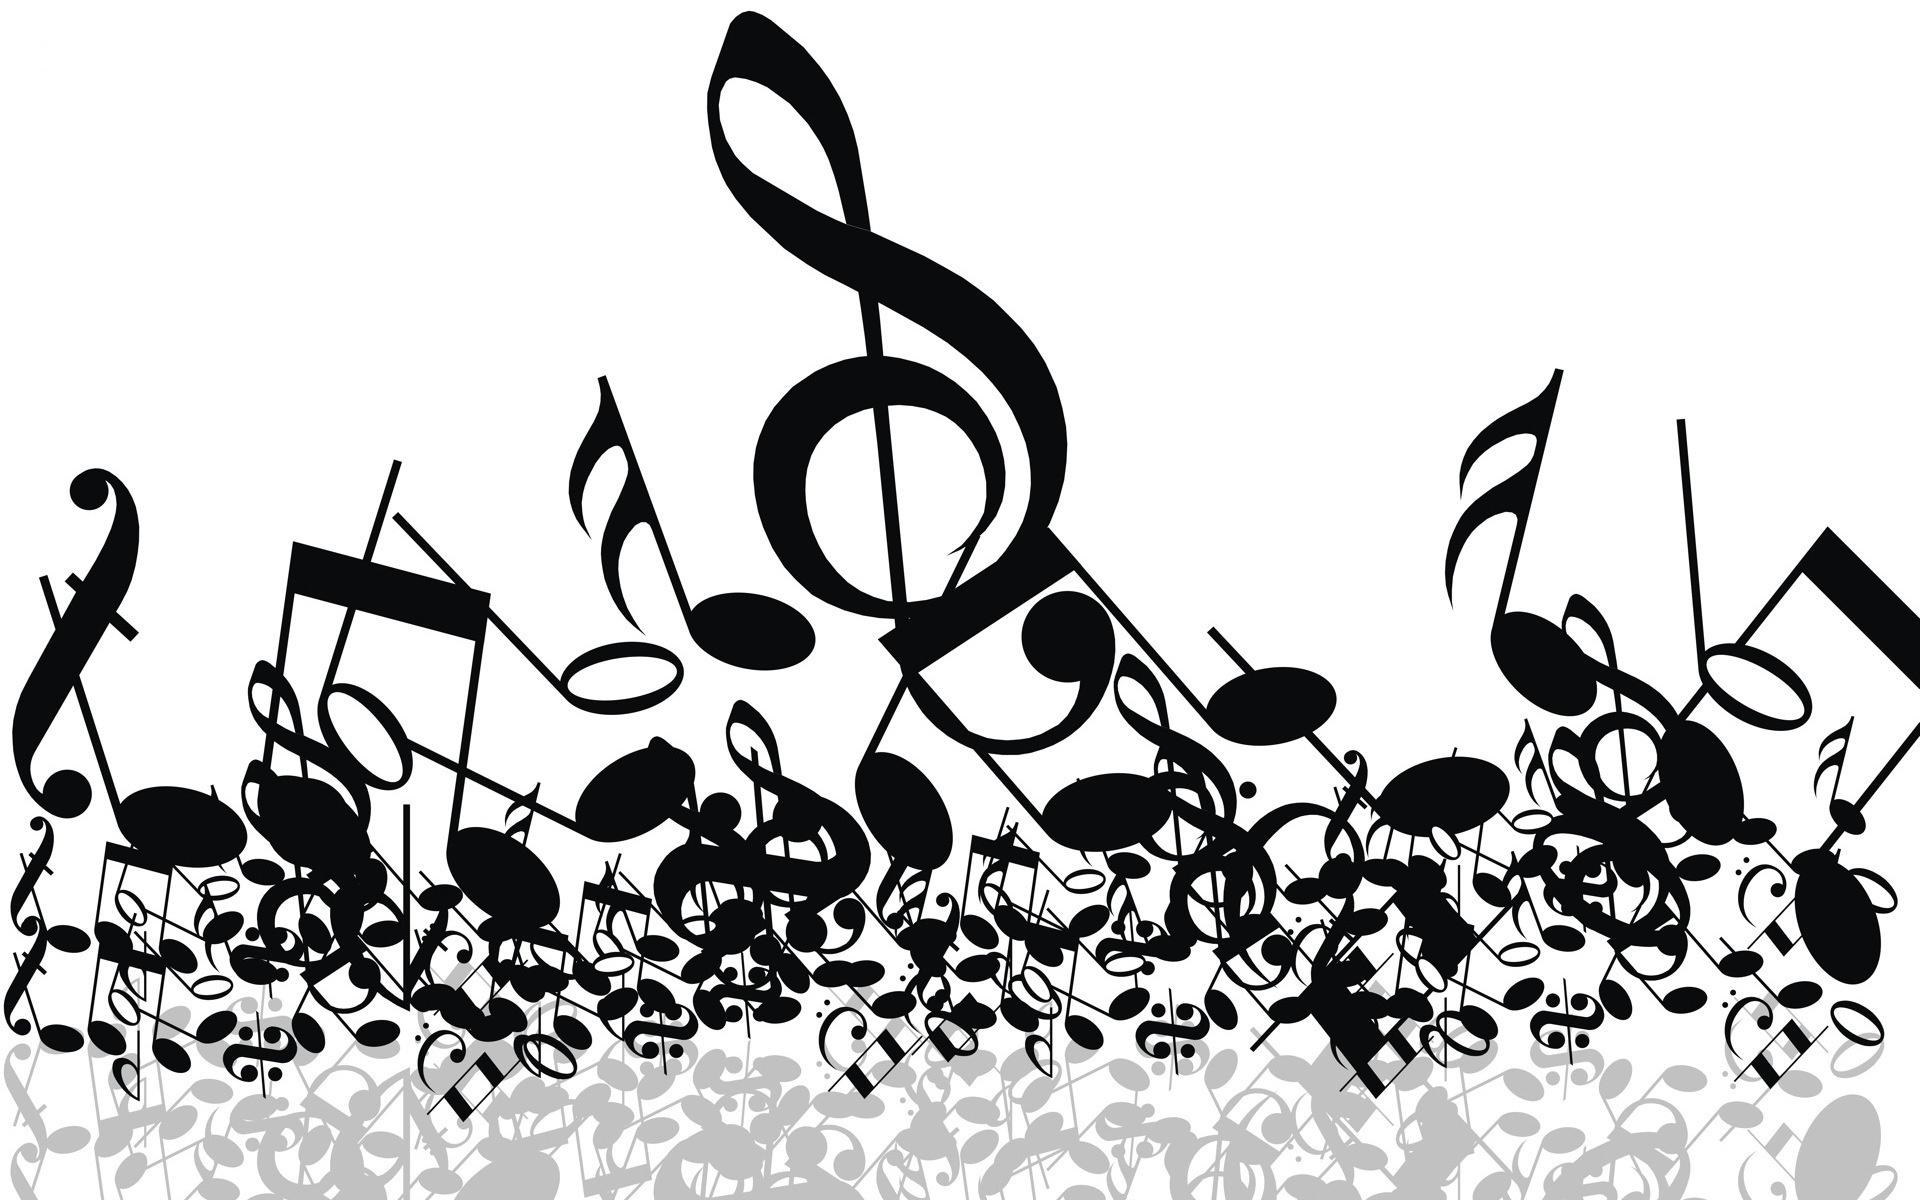 Spring band music clipart black and white clipart black and white library Free spring concert clipart band image 2 – Gclipart.com clipart black and white library